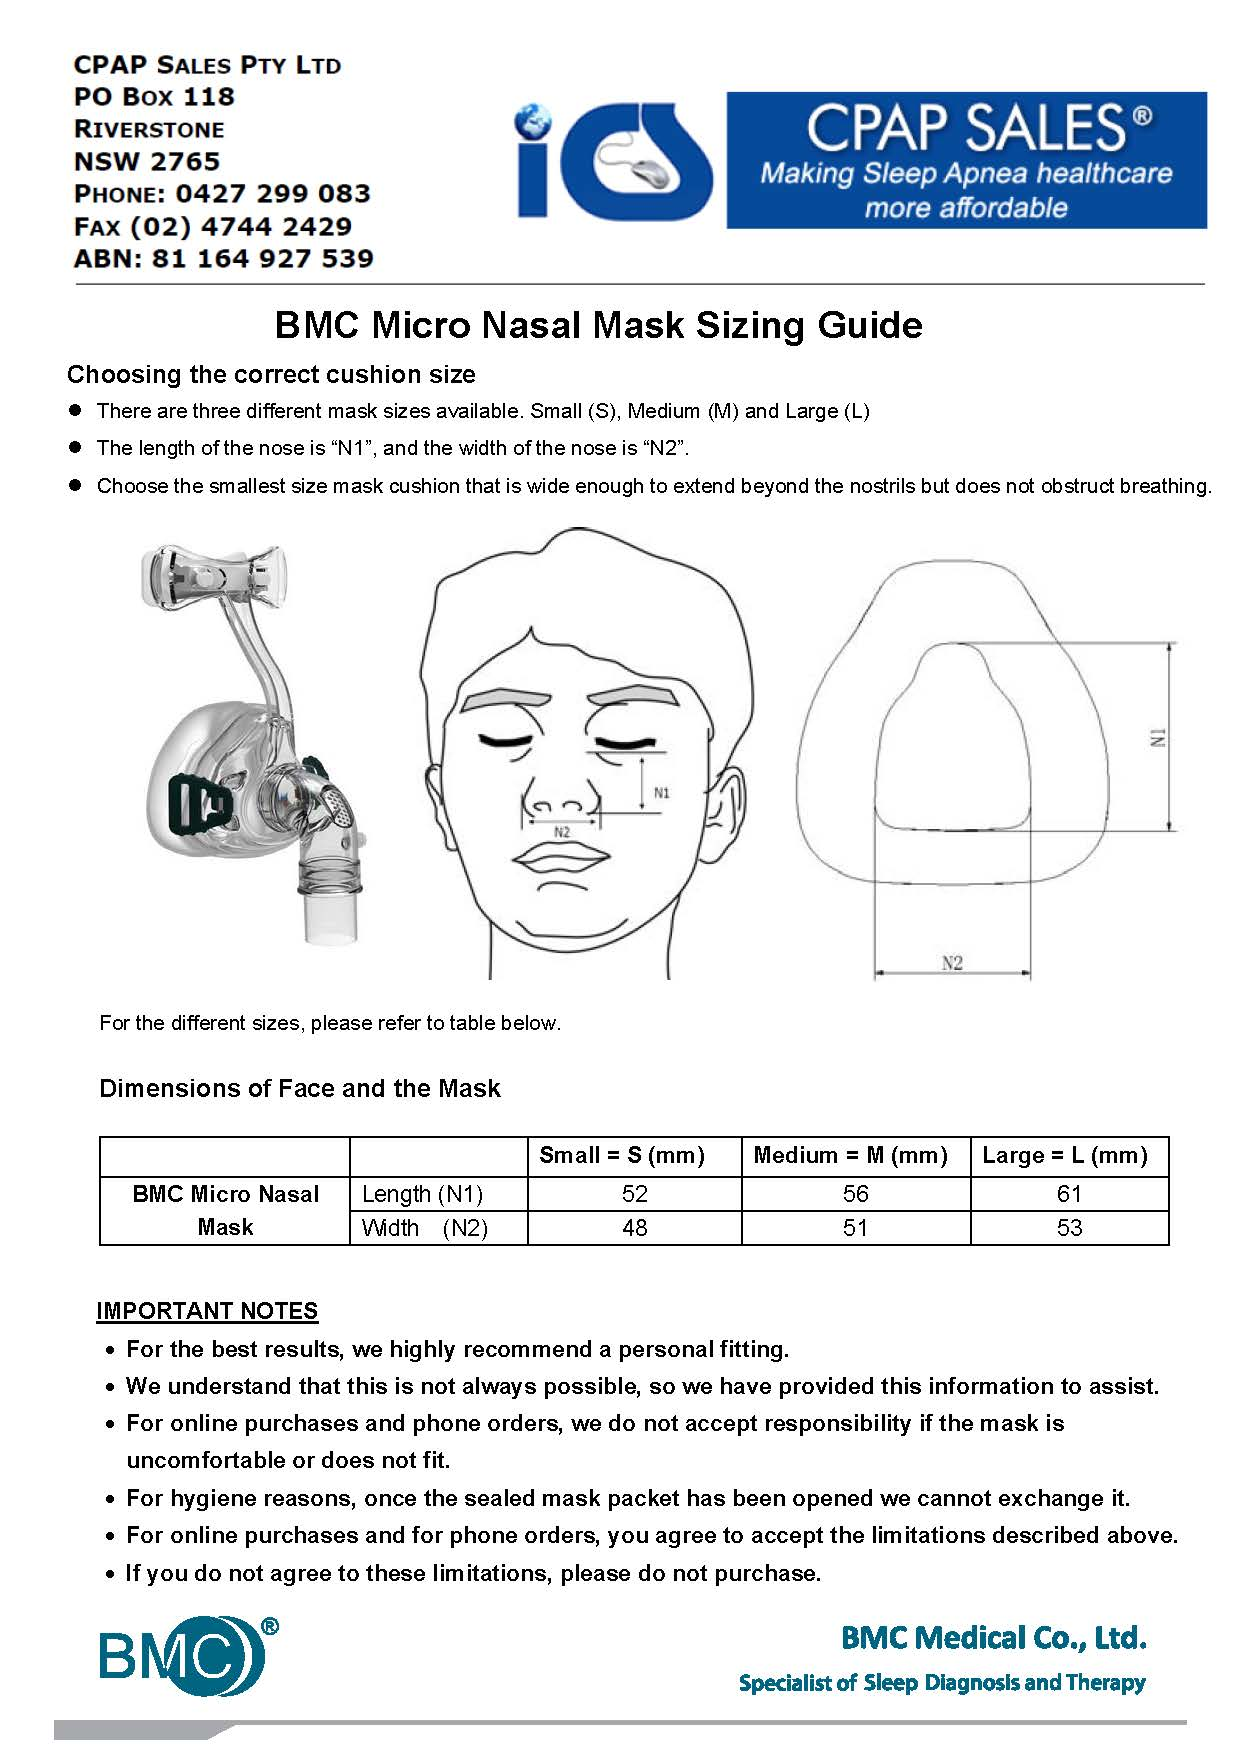 Micro Nasal Mask CPAP Mask Measurement